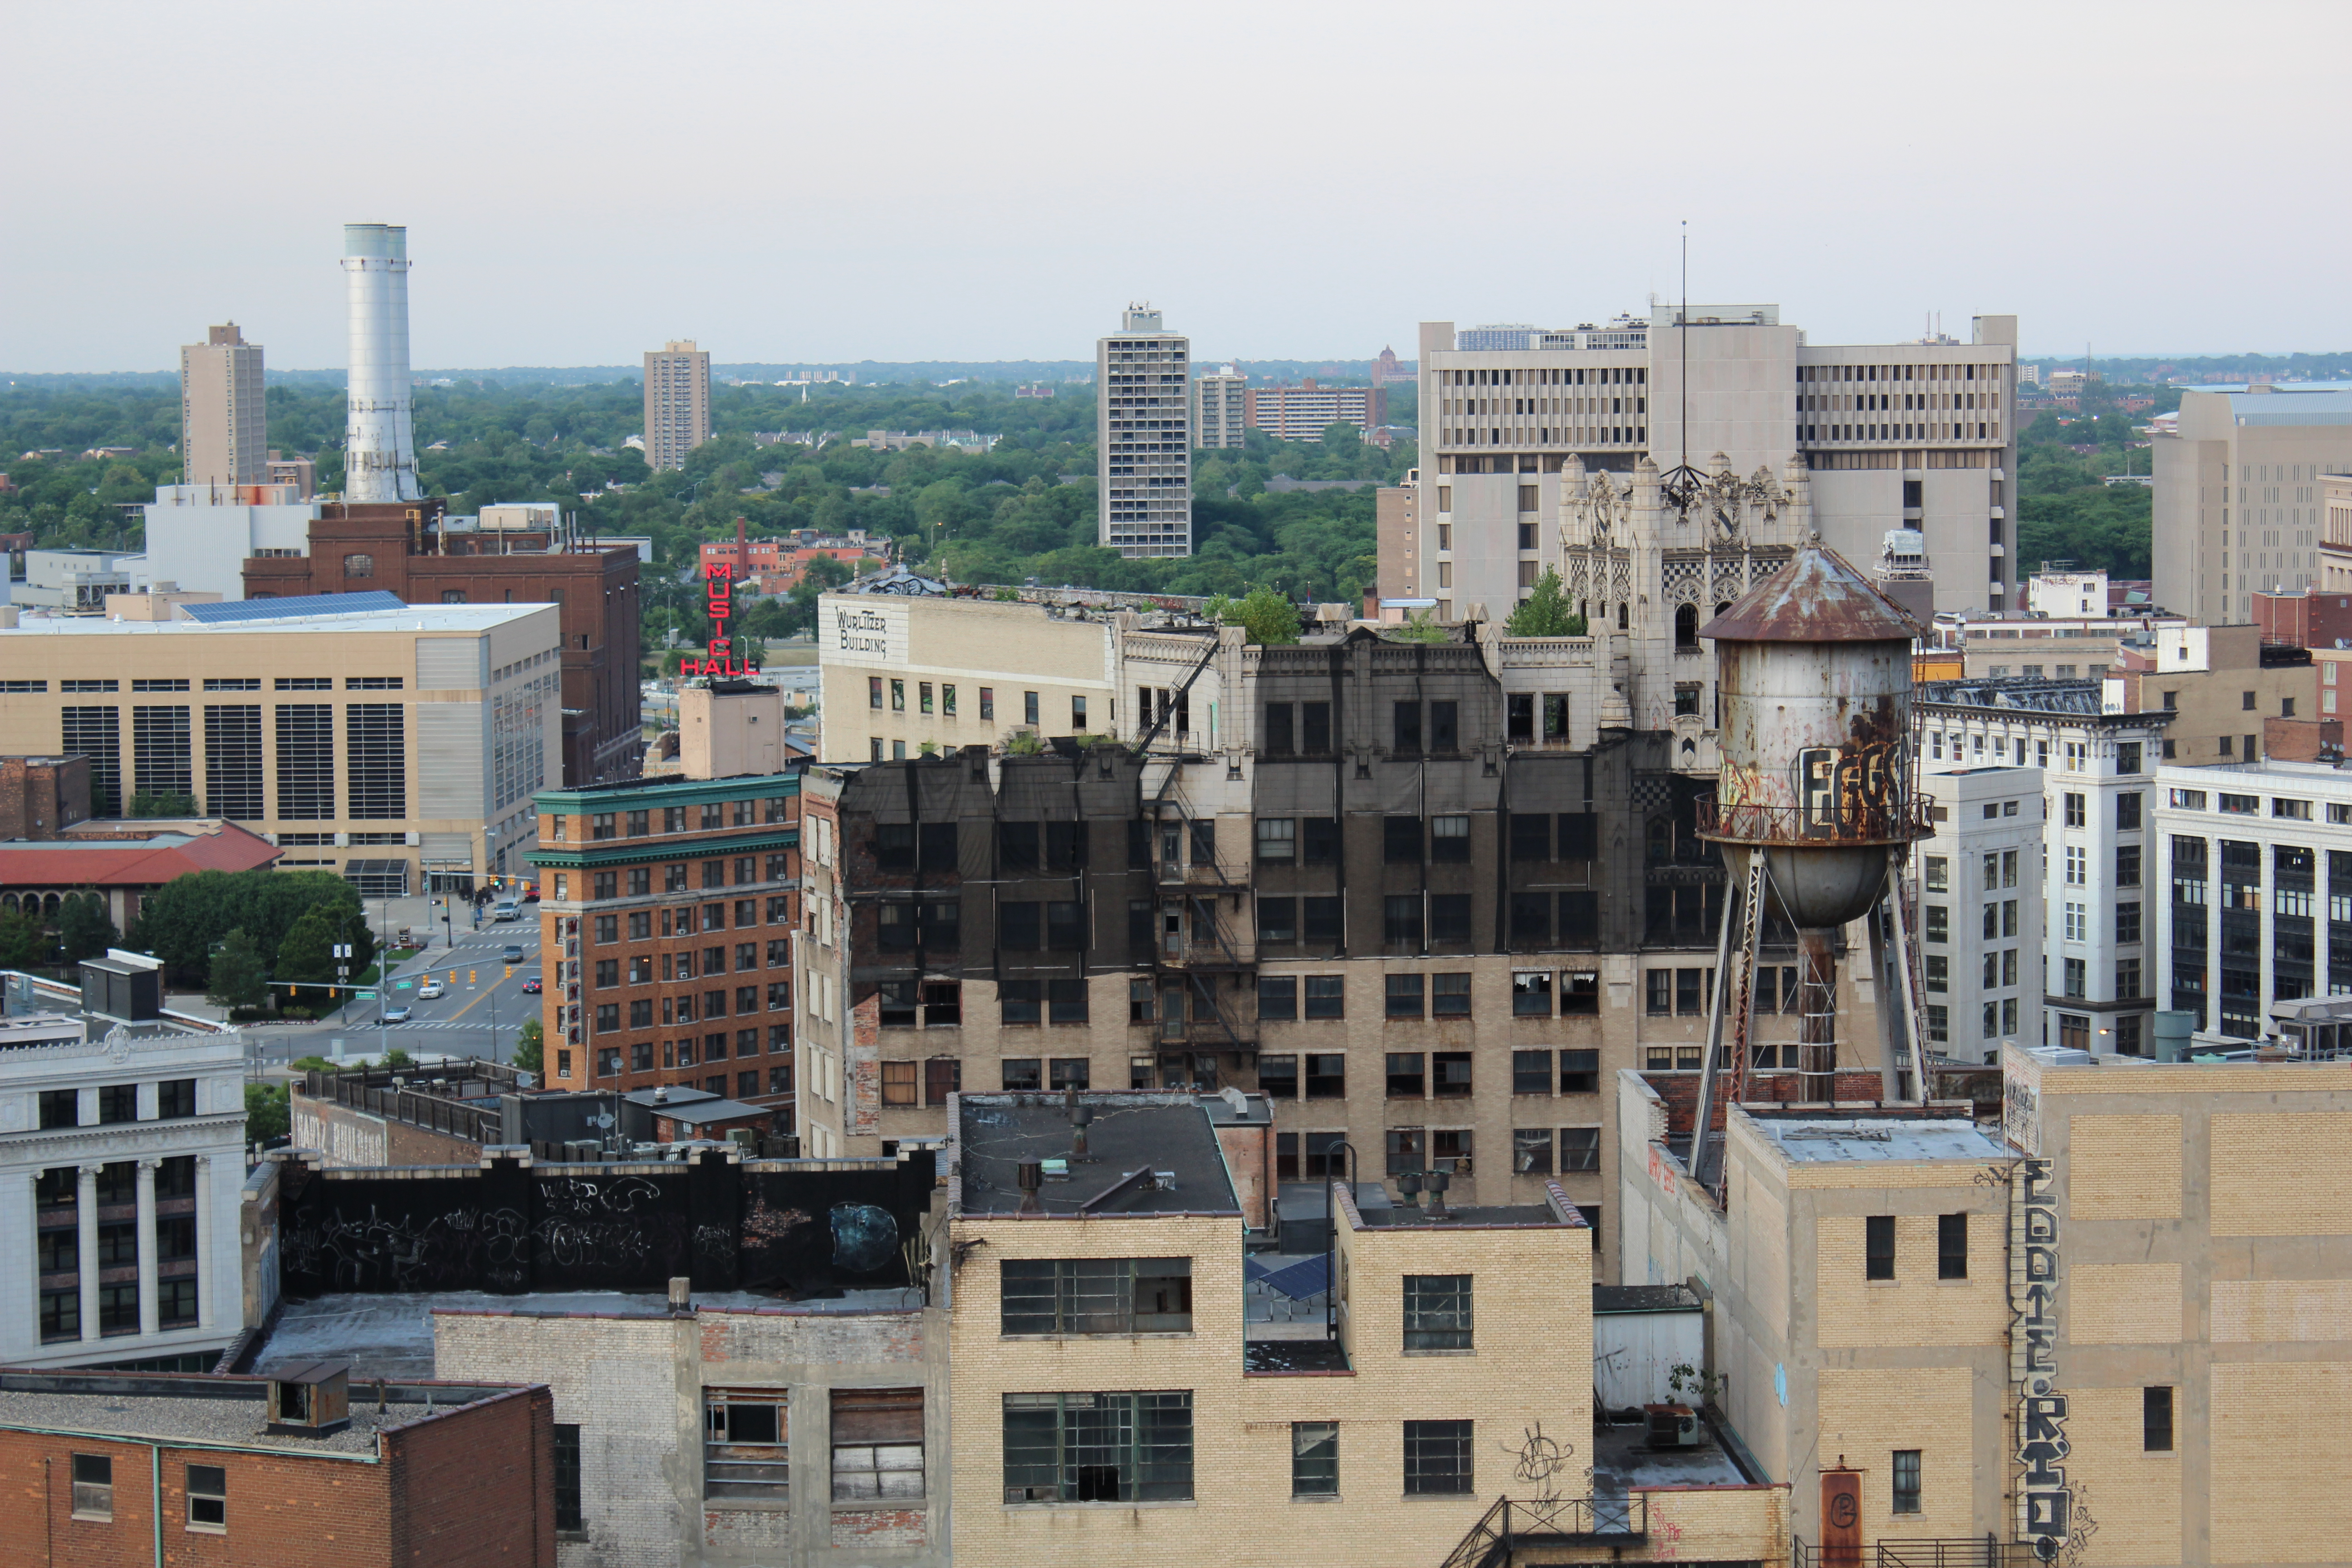 Could social democracy have saved Detroit?